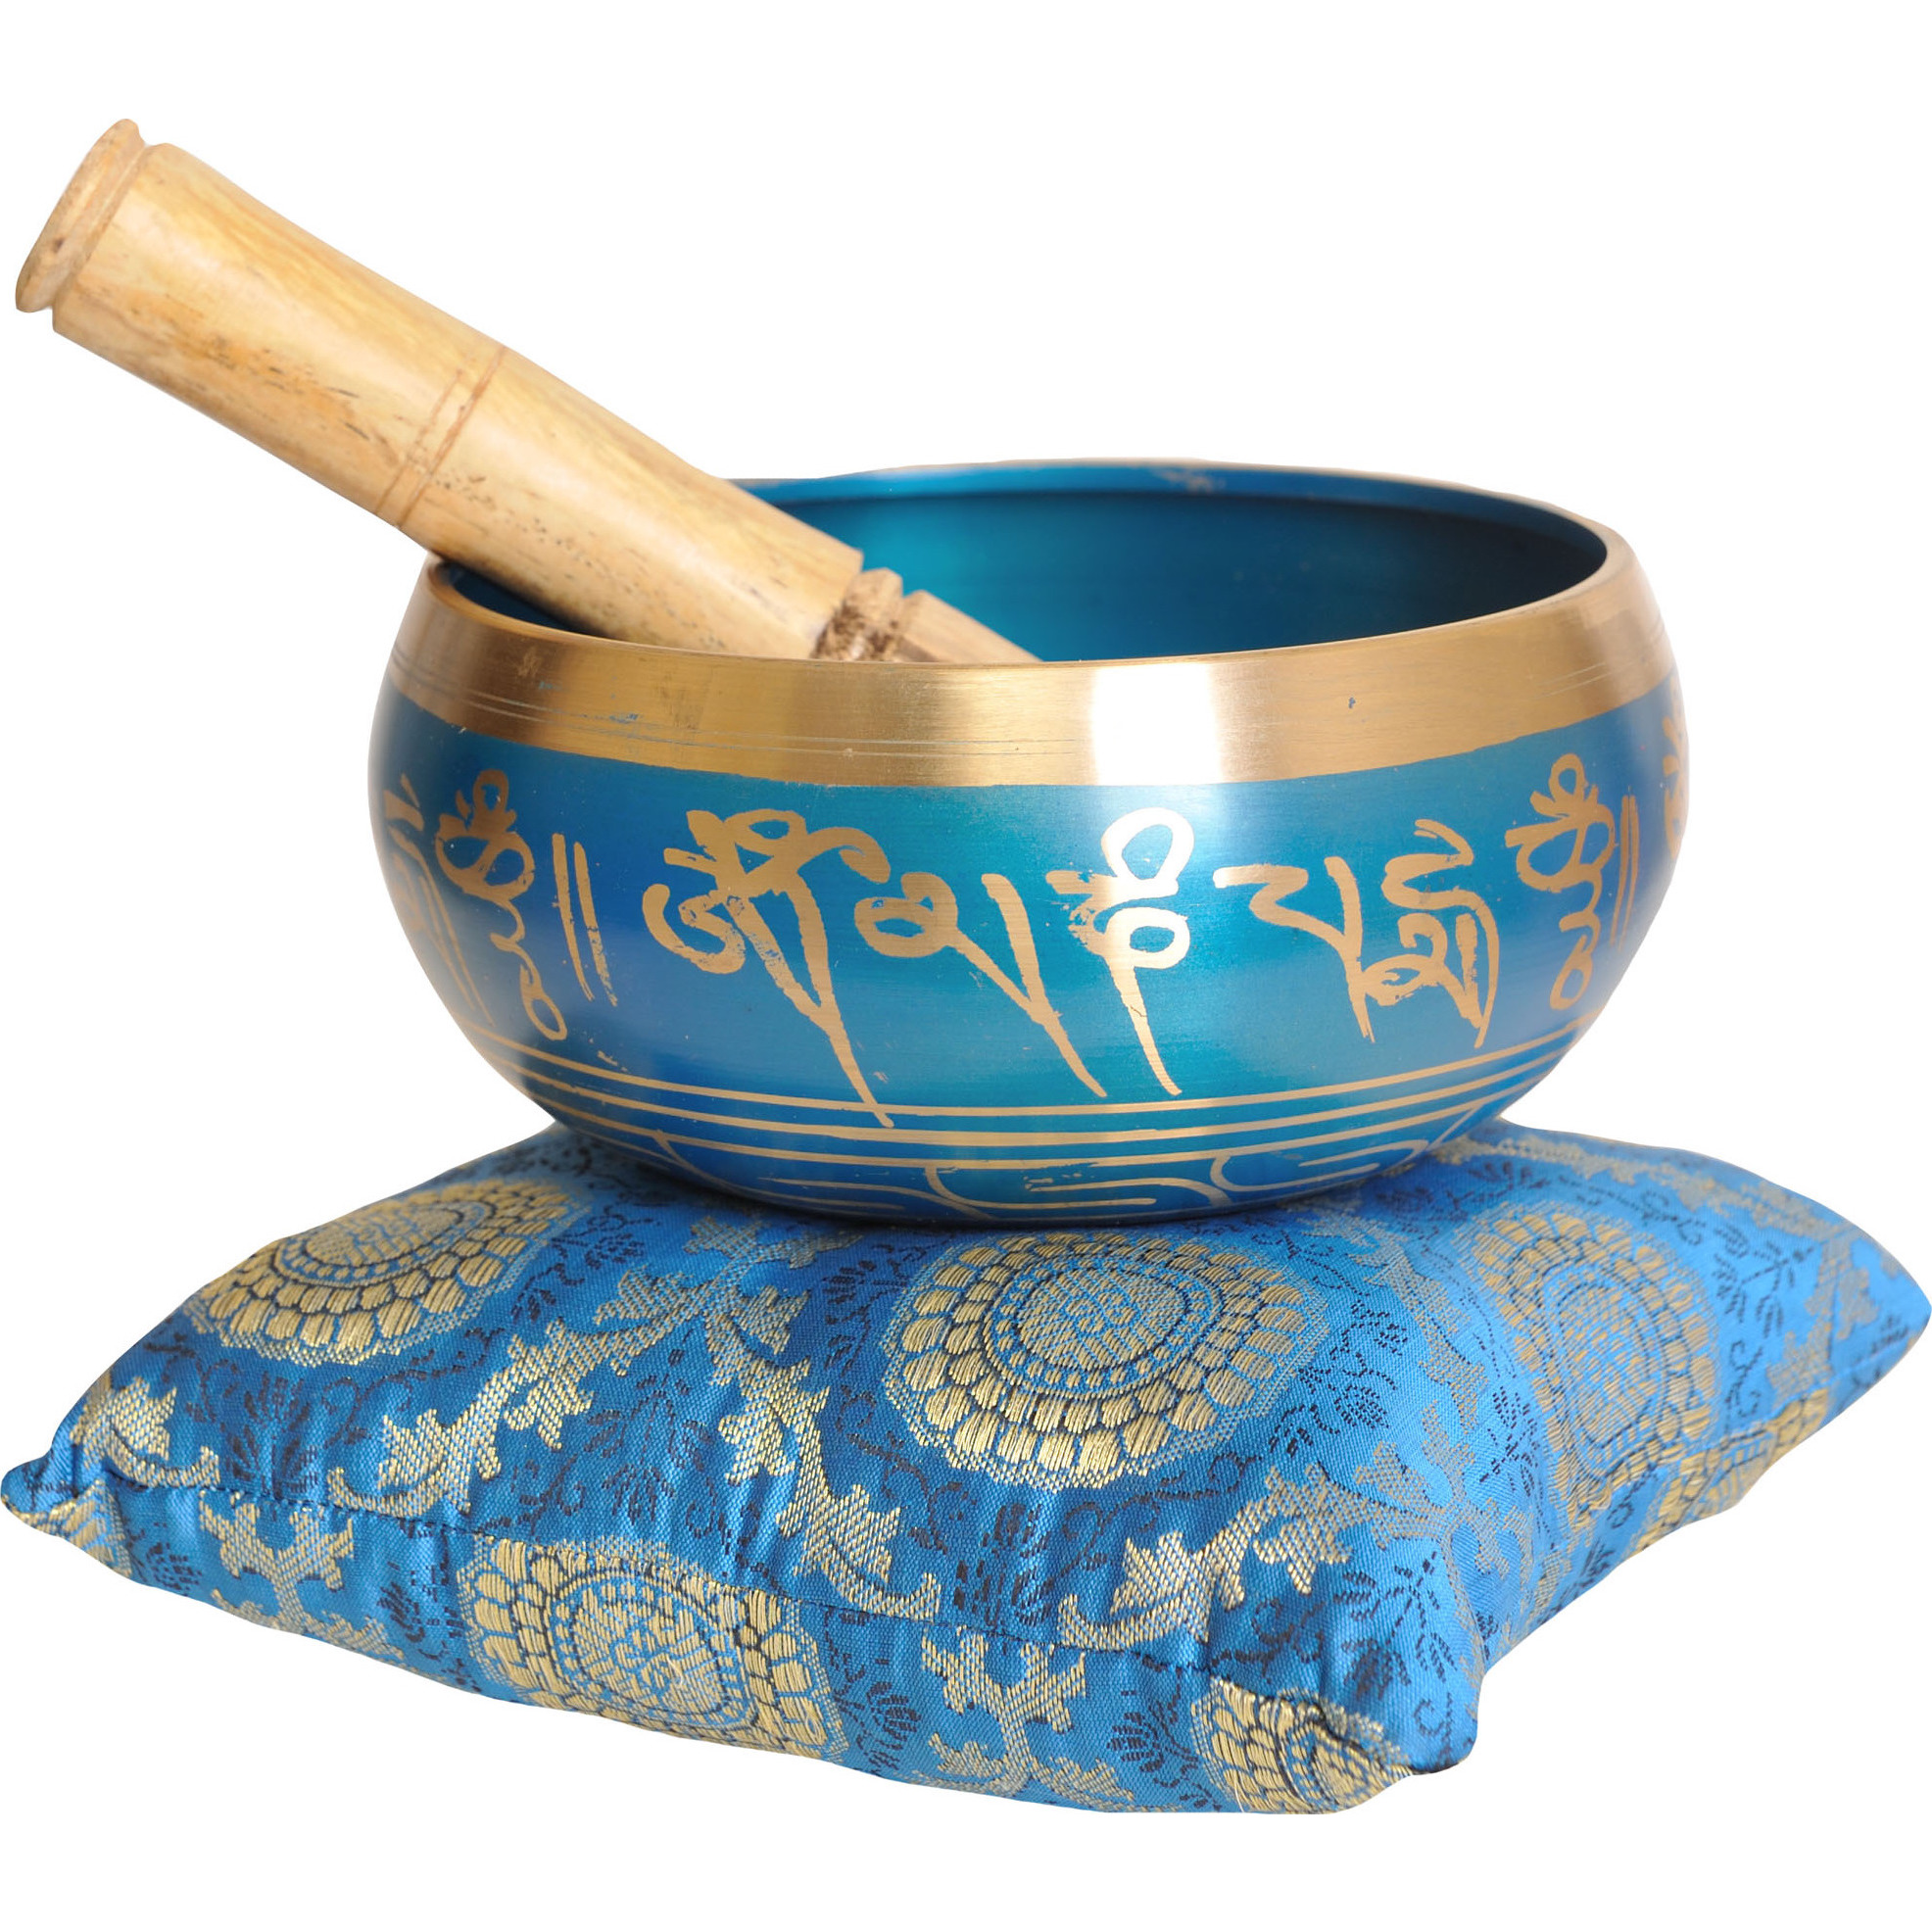 Tibetan Buddhist Singing Bowl with Syllable Mantra